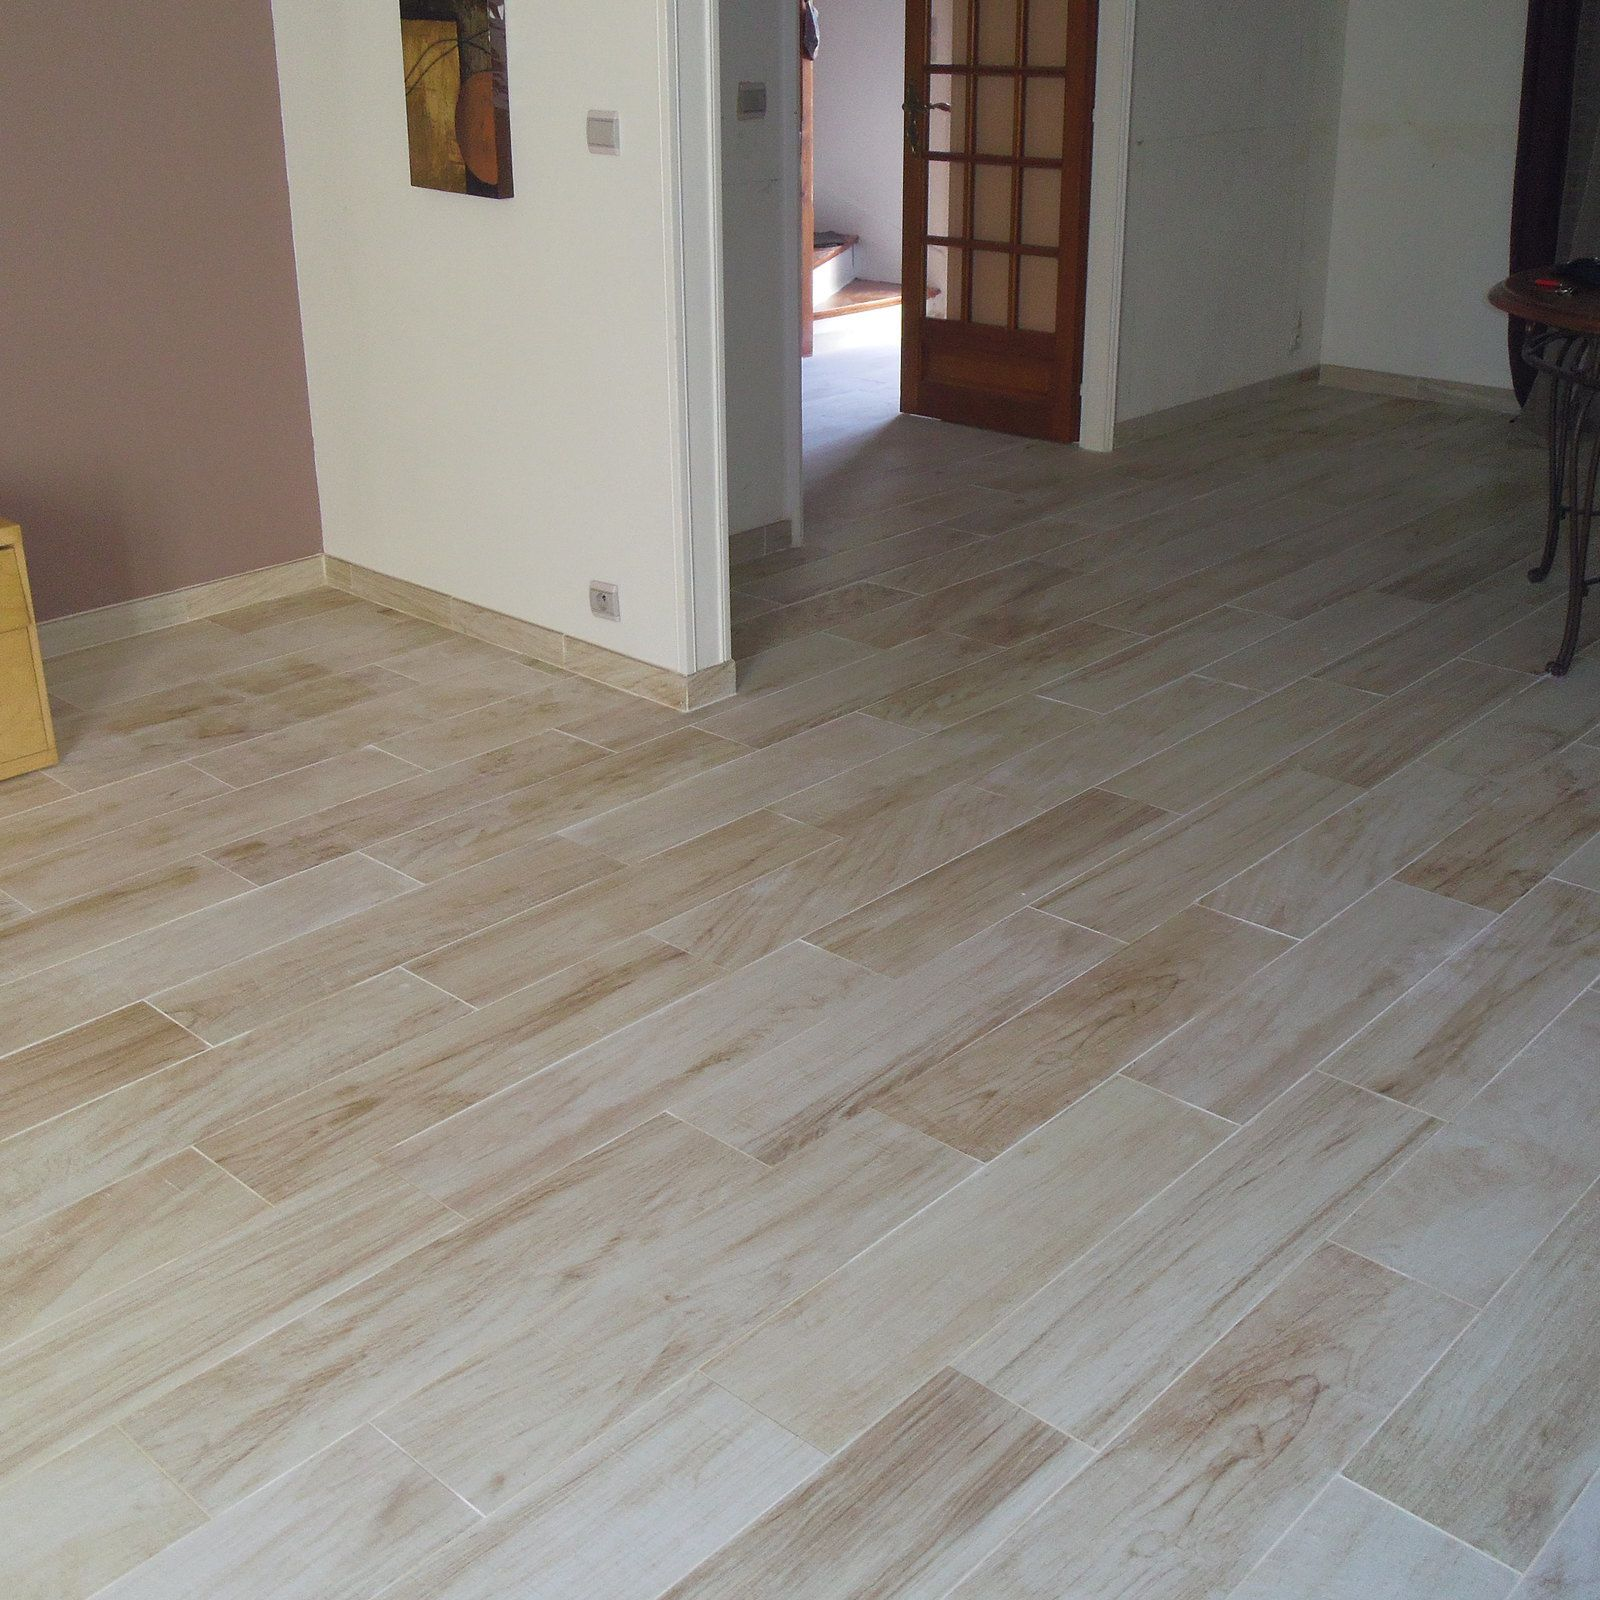 Pose d 39 un carrelage imitation parquet r novation en b timent for Pose carrelage sol imitation parquet